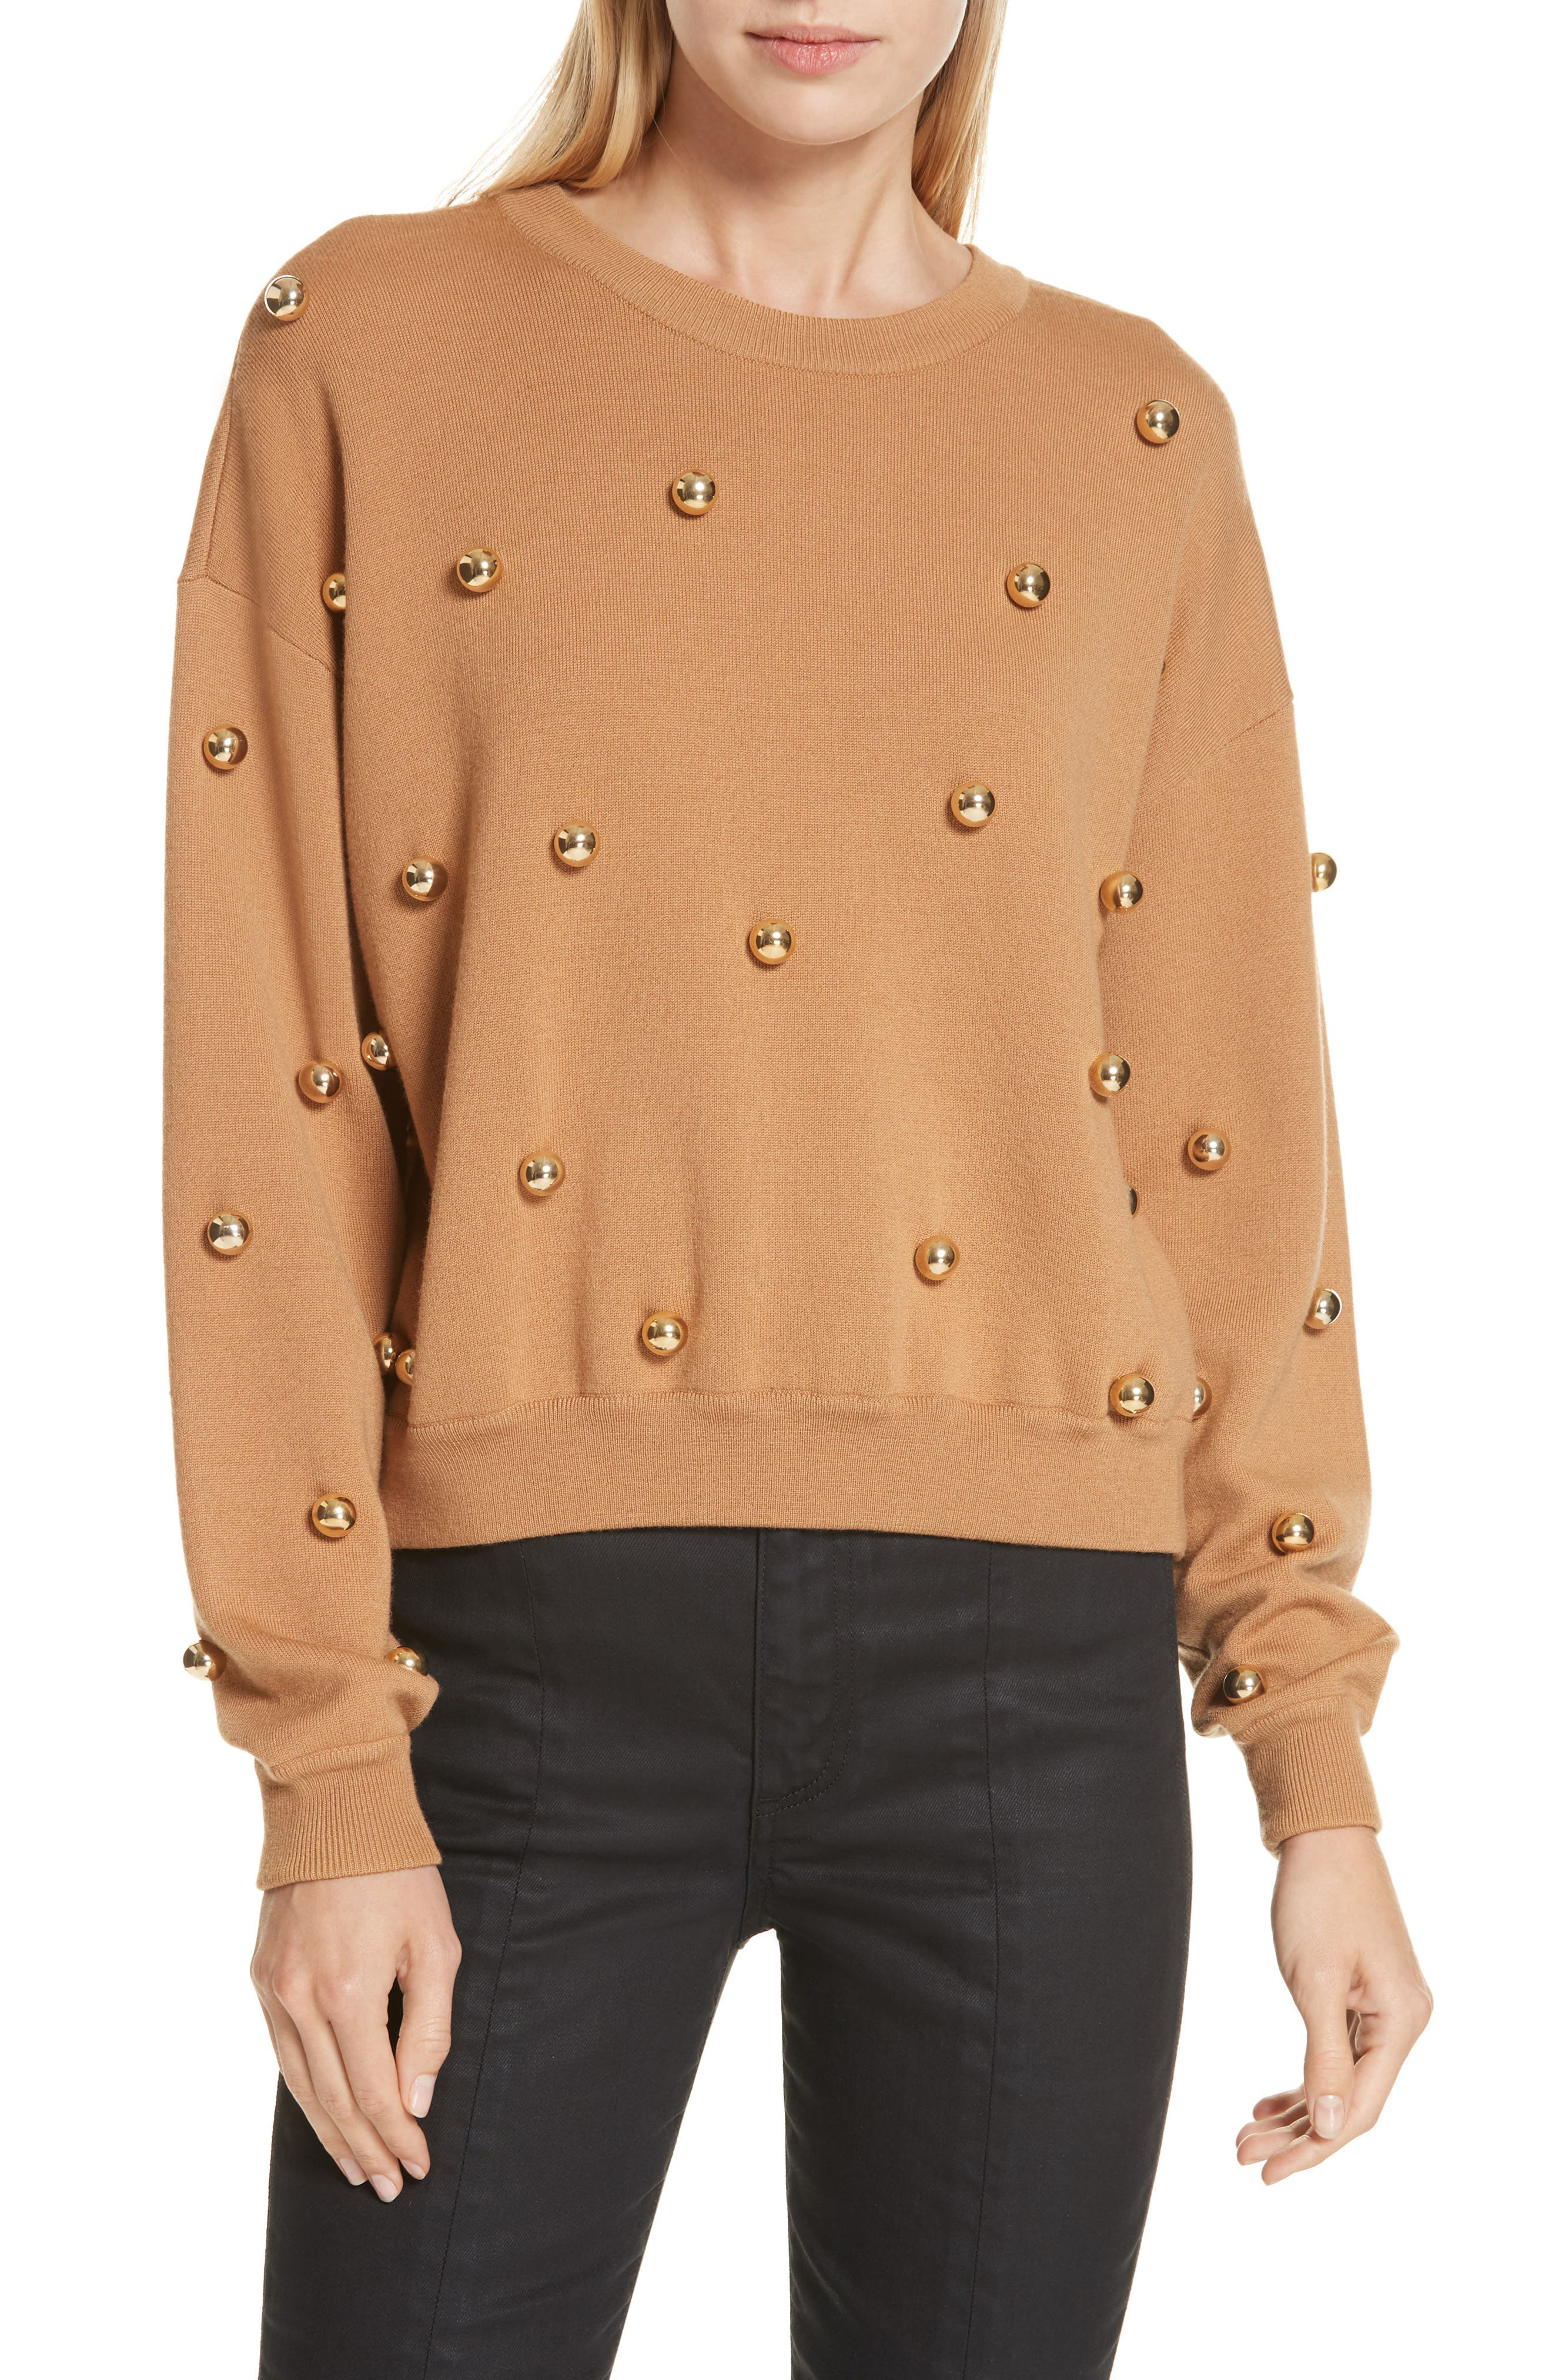 ALICE + OLIVIA, Gleeson Metal Ball Detail Wool Blend Sweater, Main thumbnail 1, color, 200